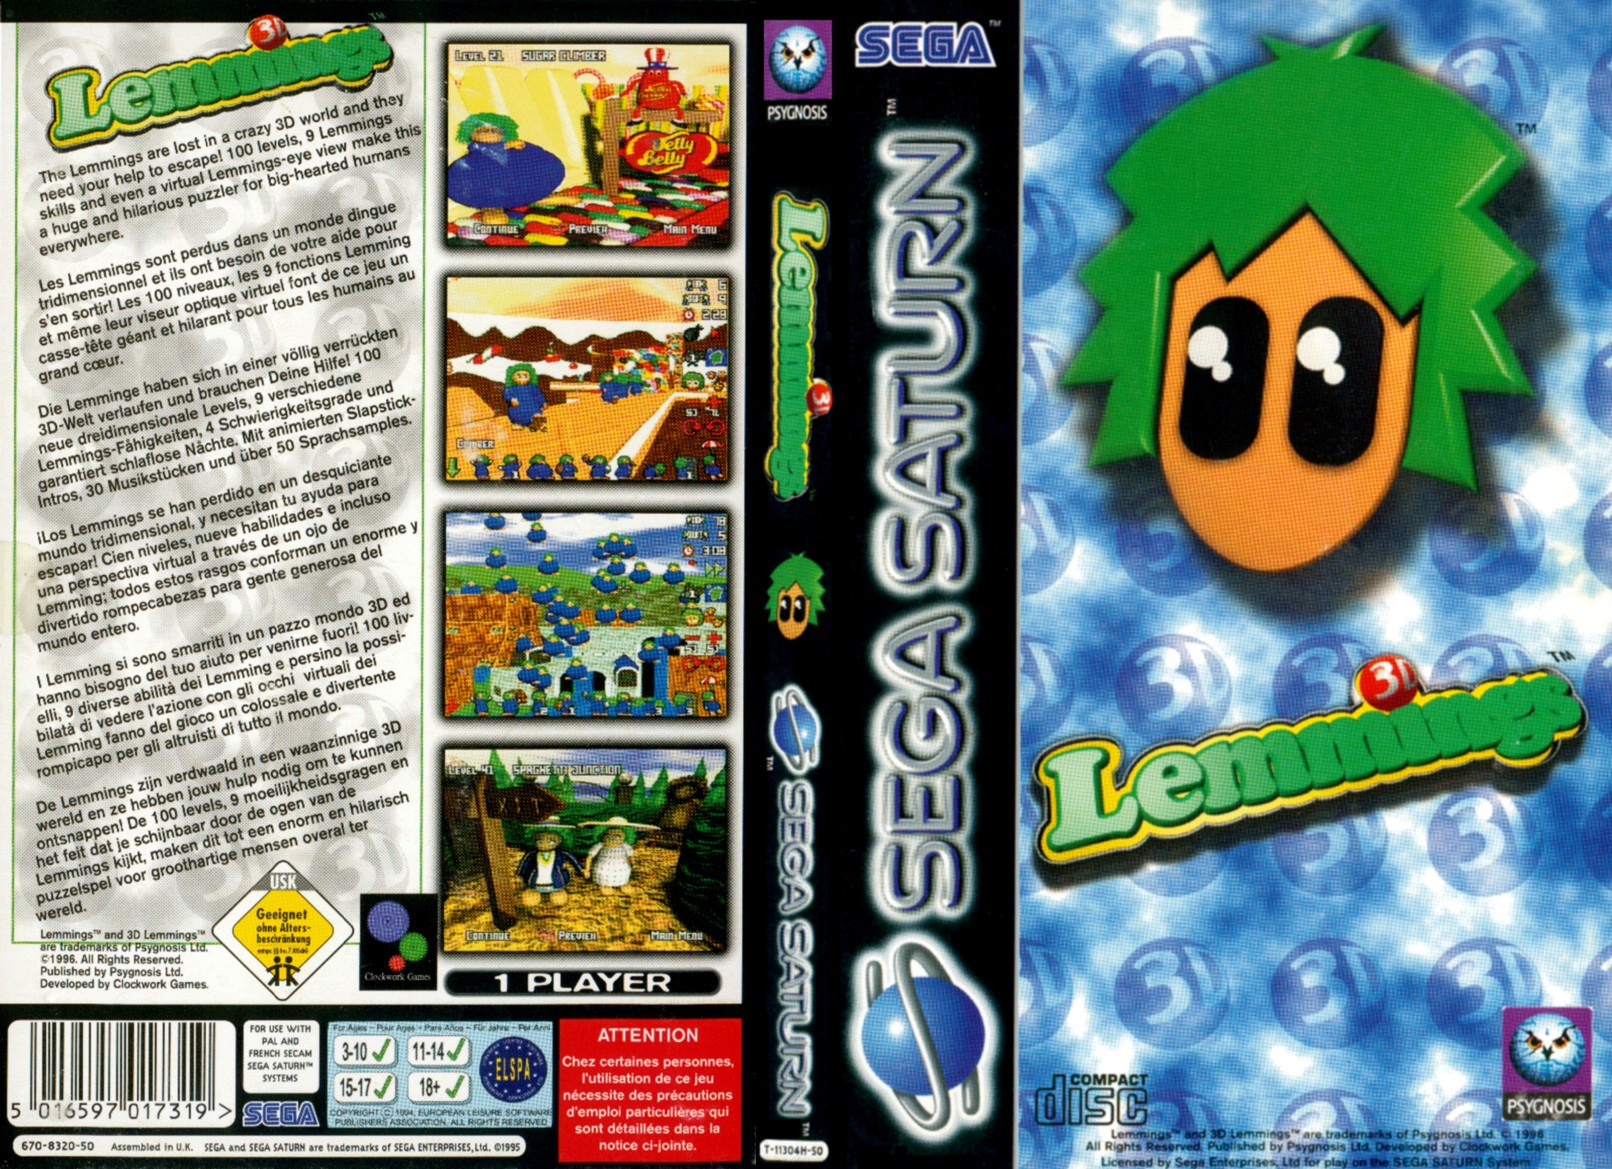 Sega Saturn 0 9 3D Lemmings E Game Covers Box Scans Box ...